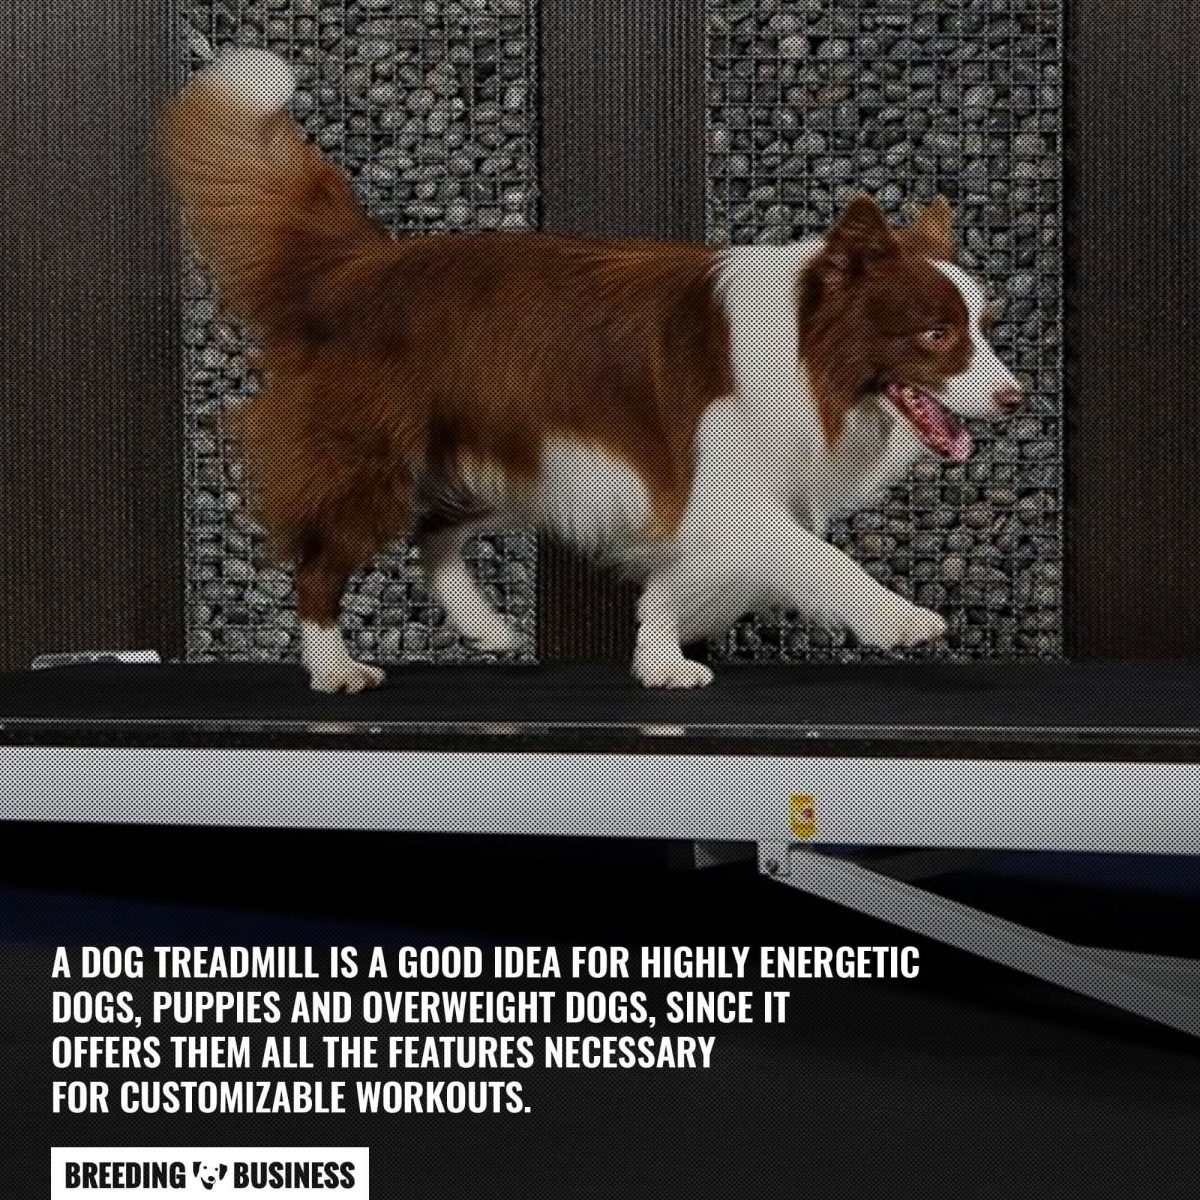 how long should a dog be on a treadmill